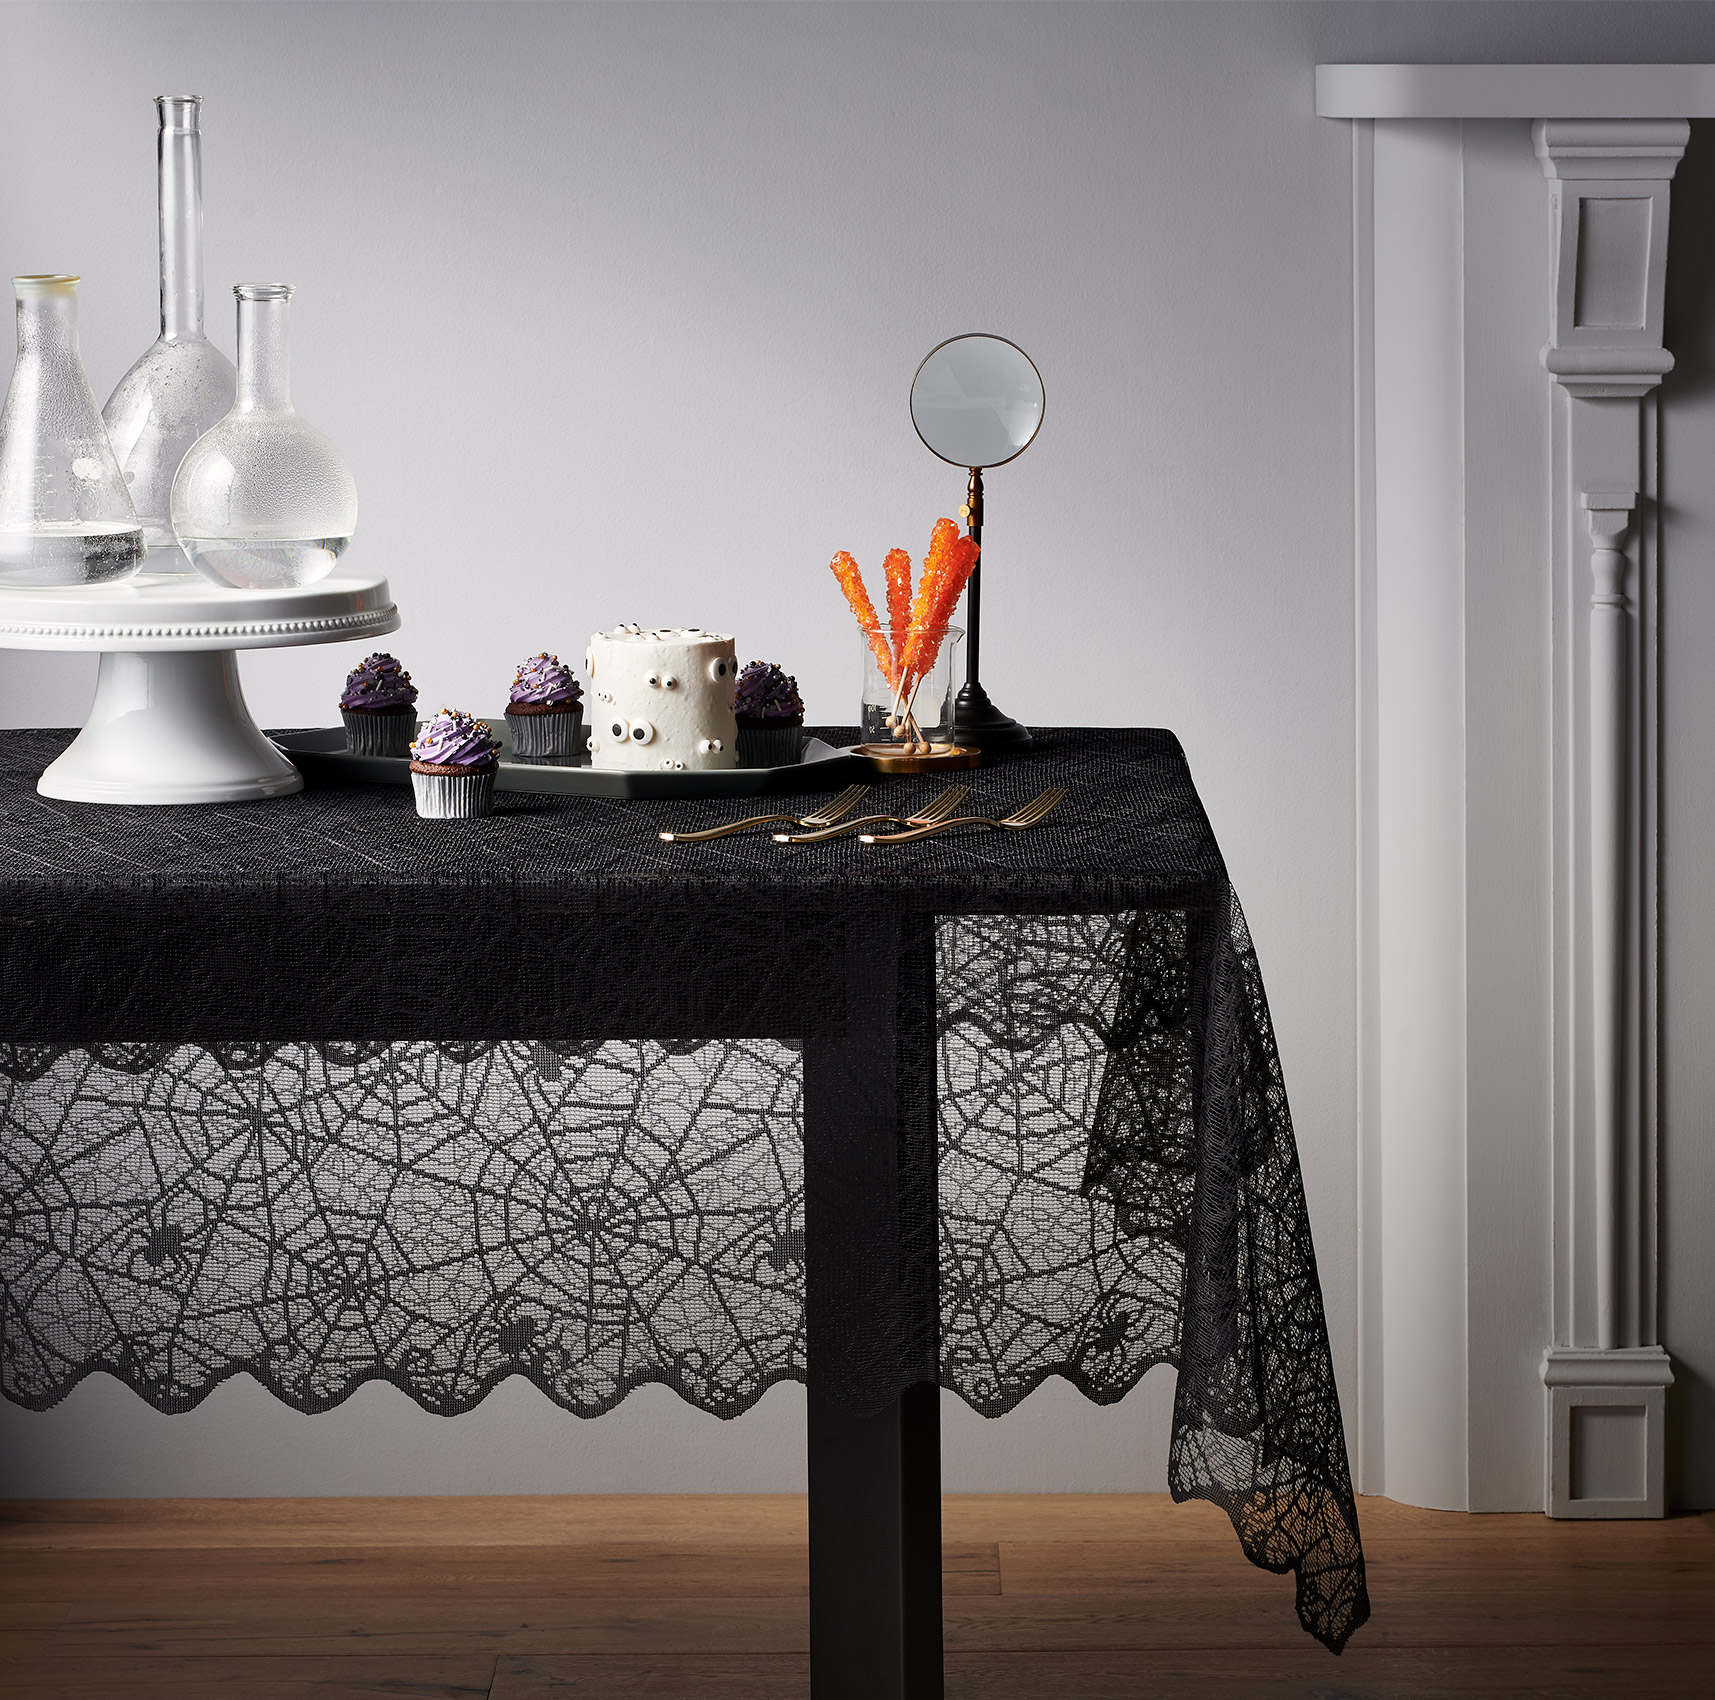 C-001217-01-025_240-43-0675_TableCover_Lace_Black